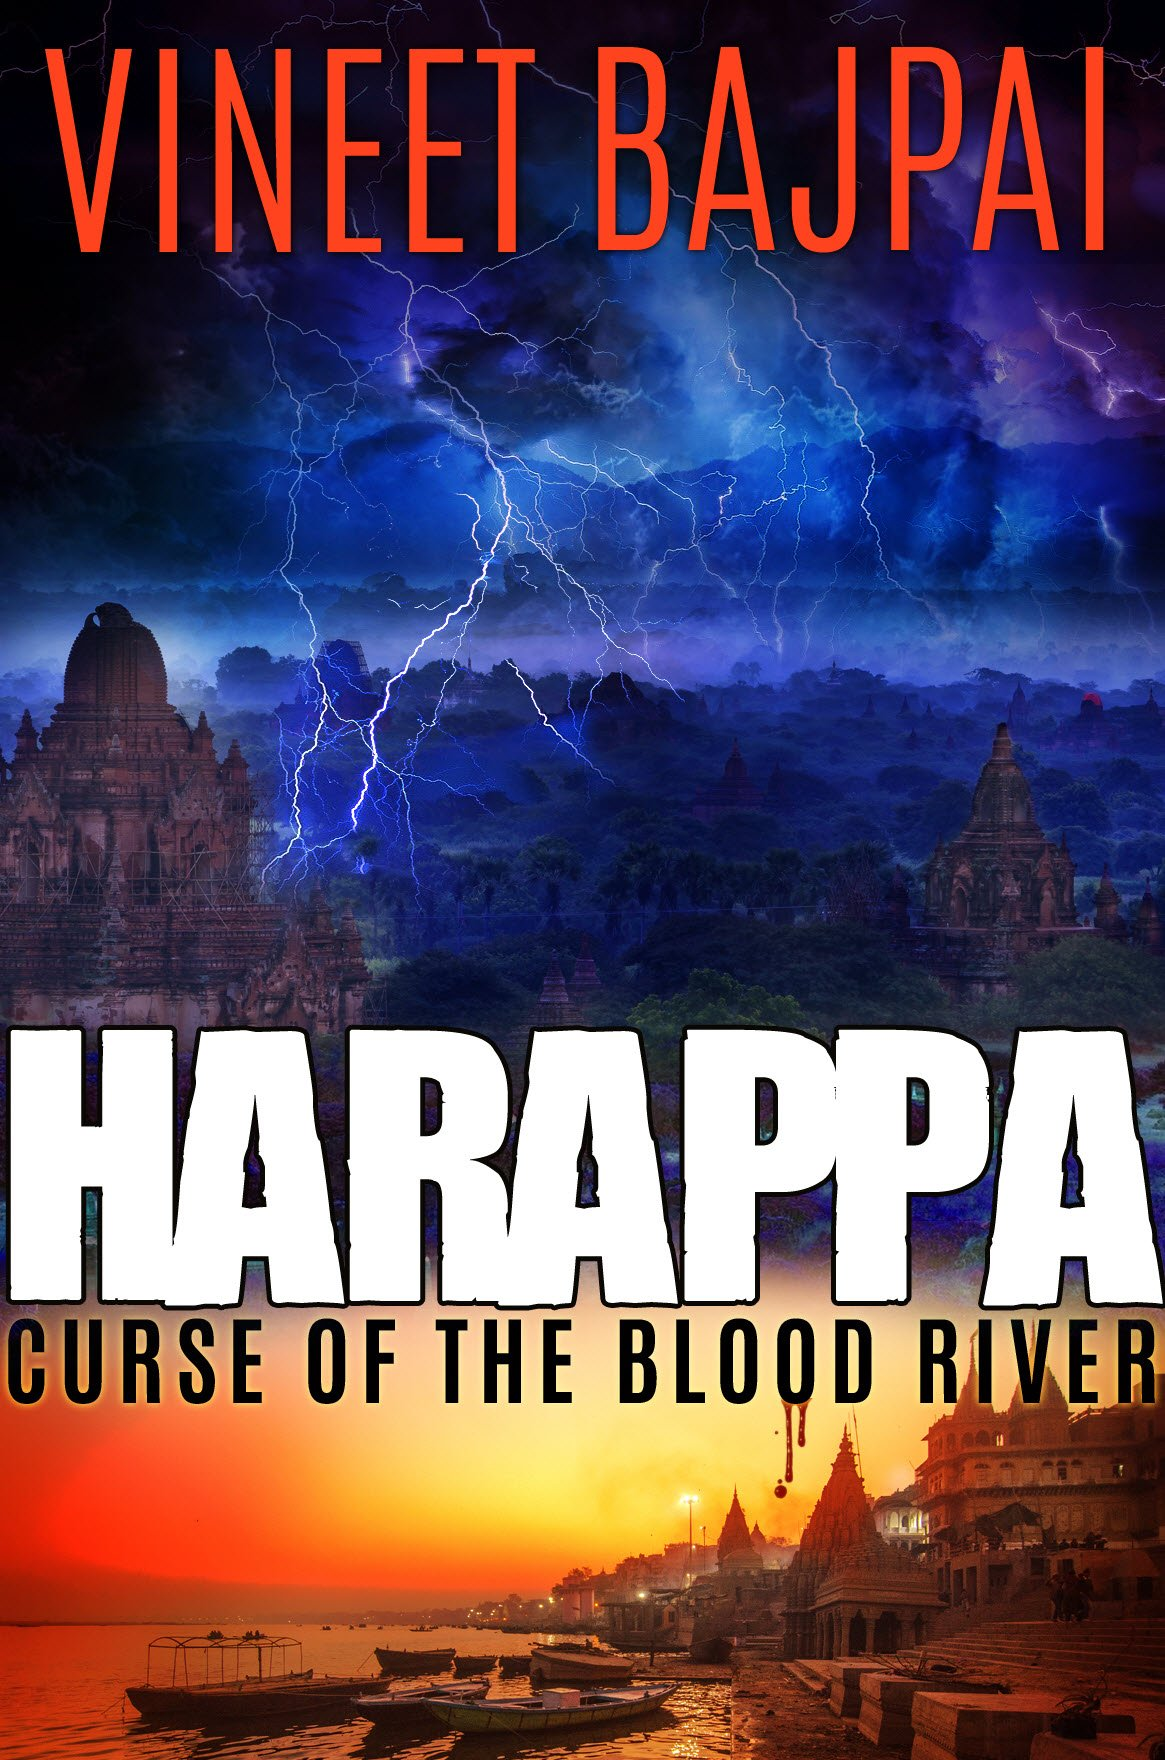 Harappa: Curse of Blood River by Vineet Bajpai, a book I am looking forward to read